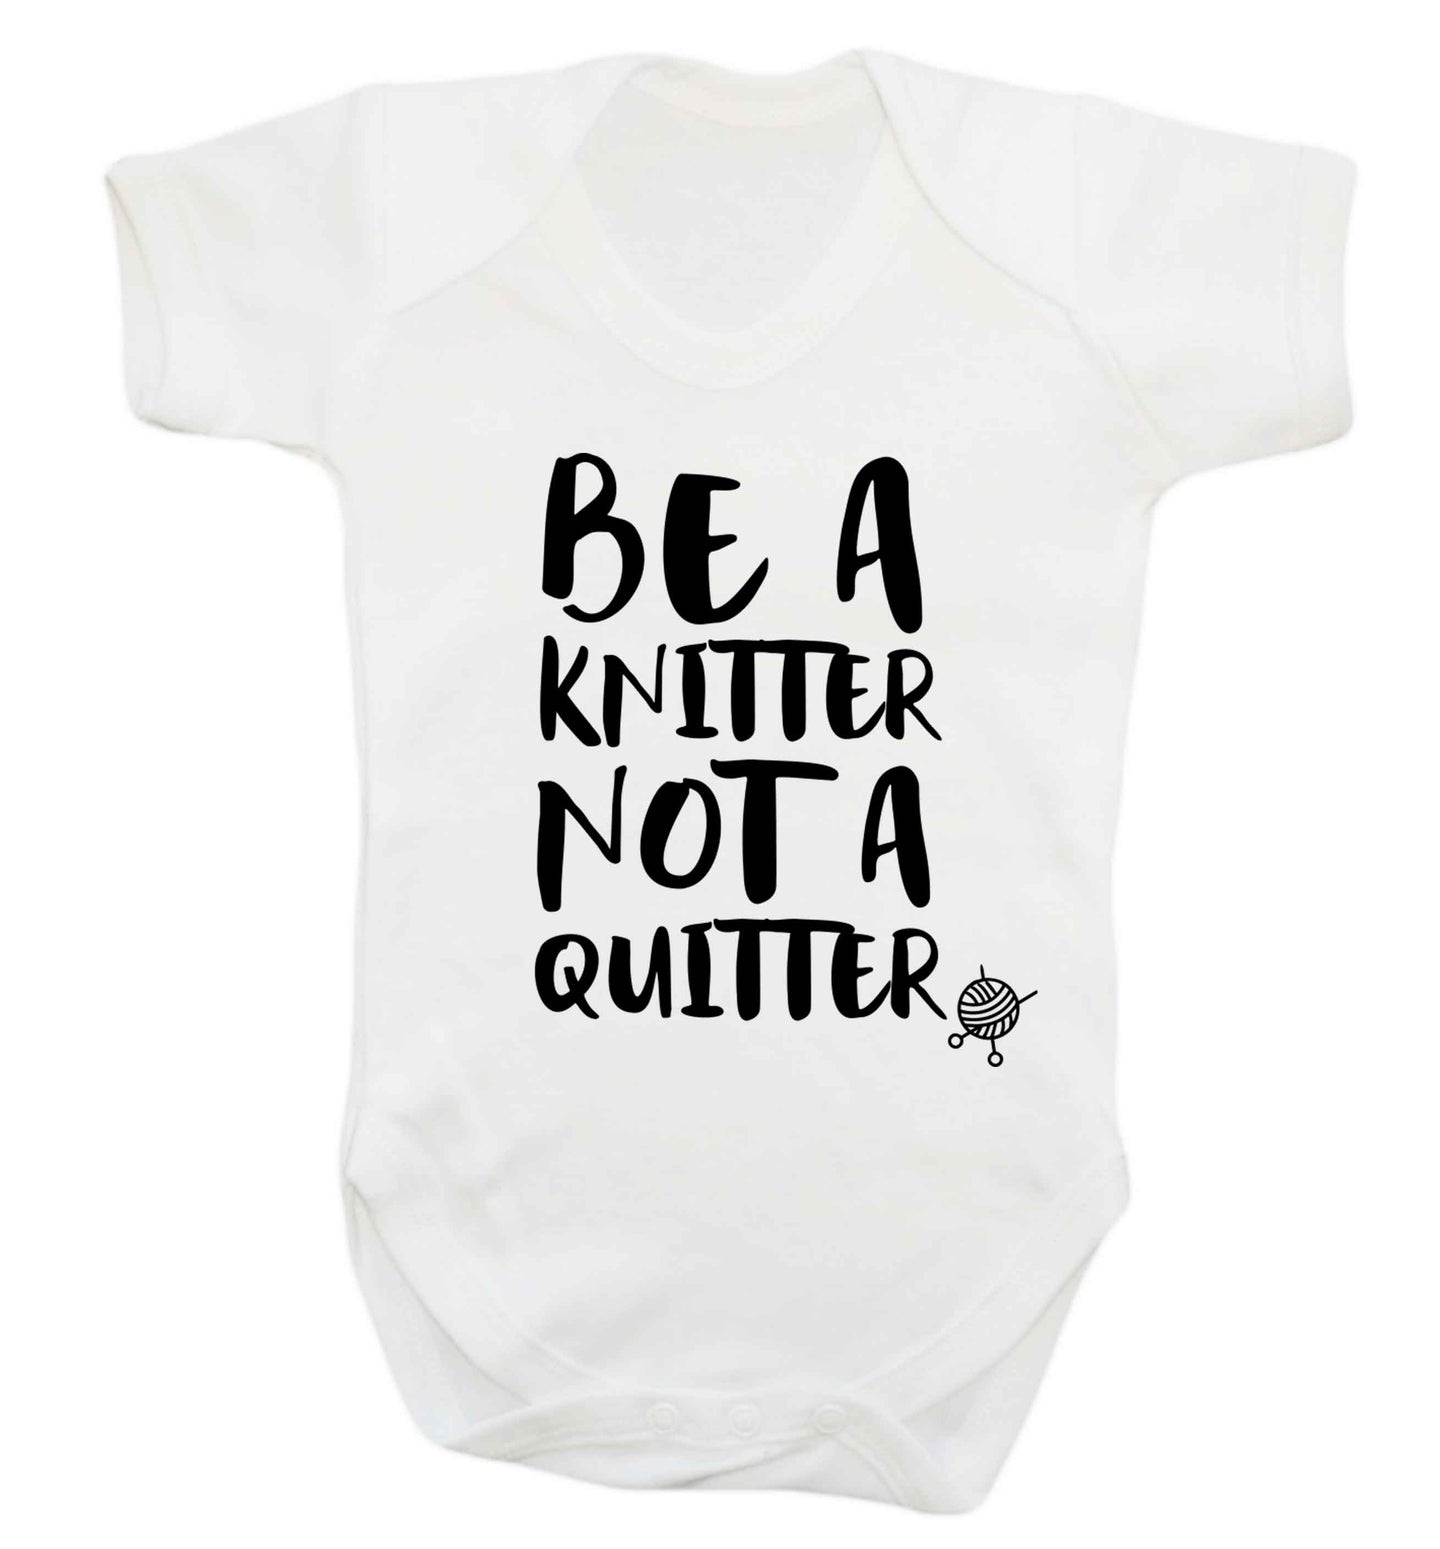 Be a knitter not a quitter Baby Vest white 18-24 months